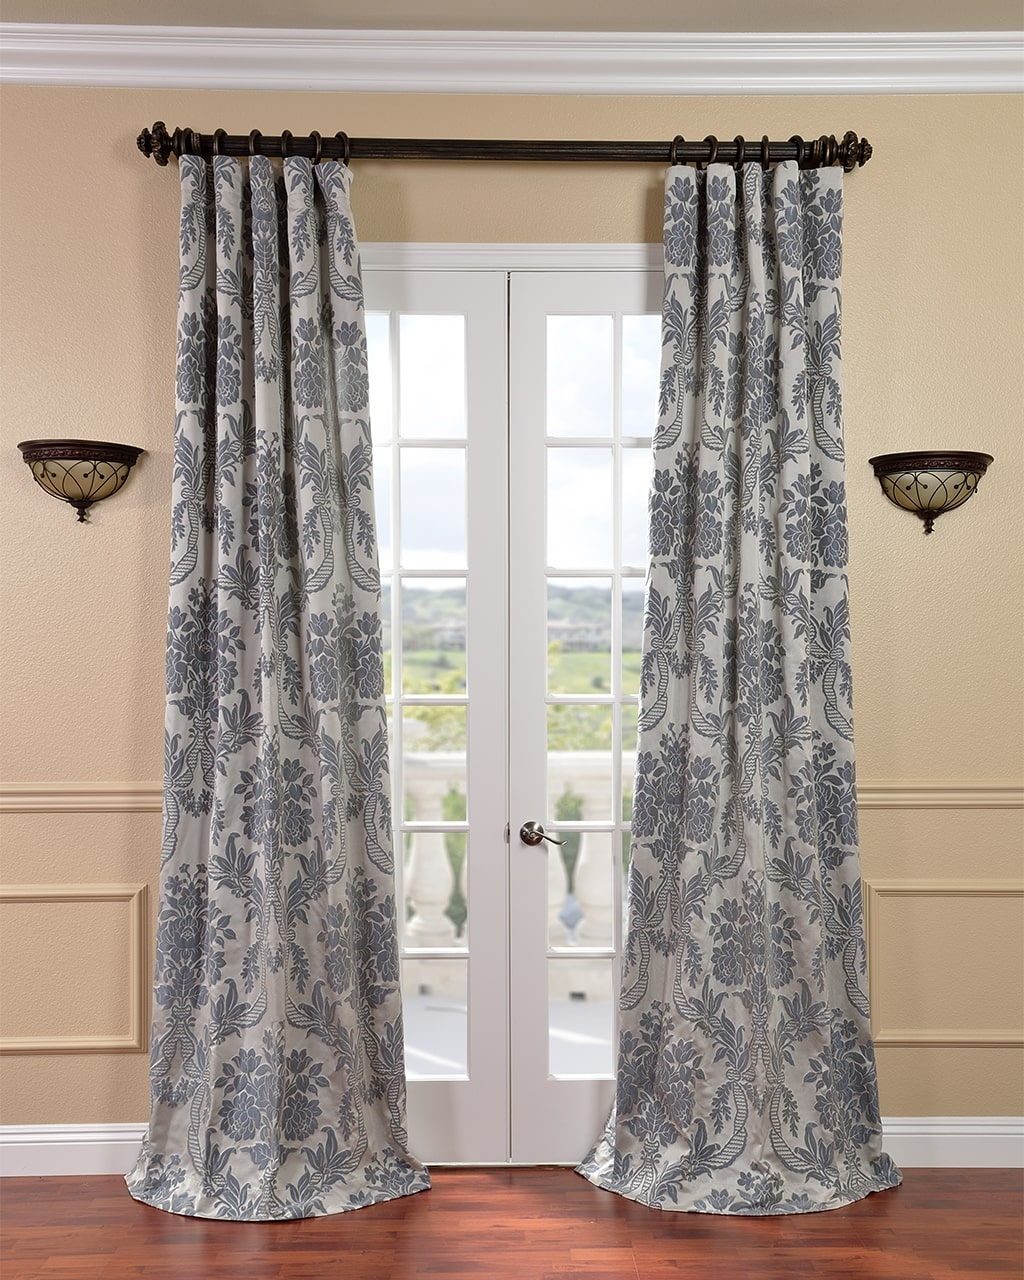 120 Inches Curtains Drapes Shop The Best Brands Overstock Throughout Extra Long Red Curtains (Image 1 of 15)